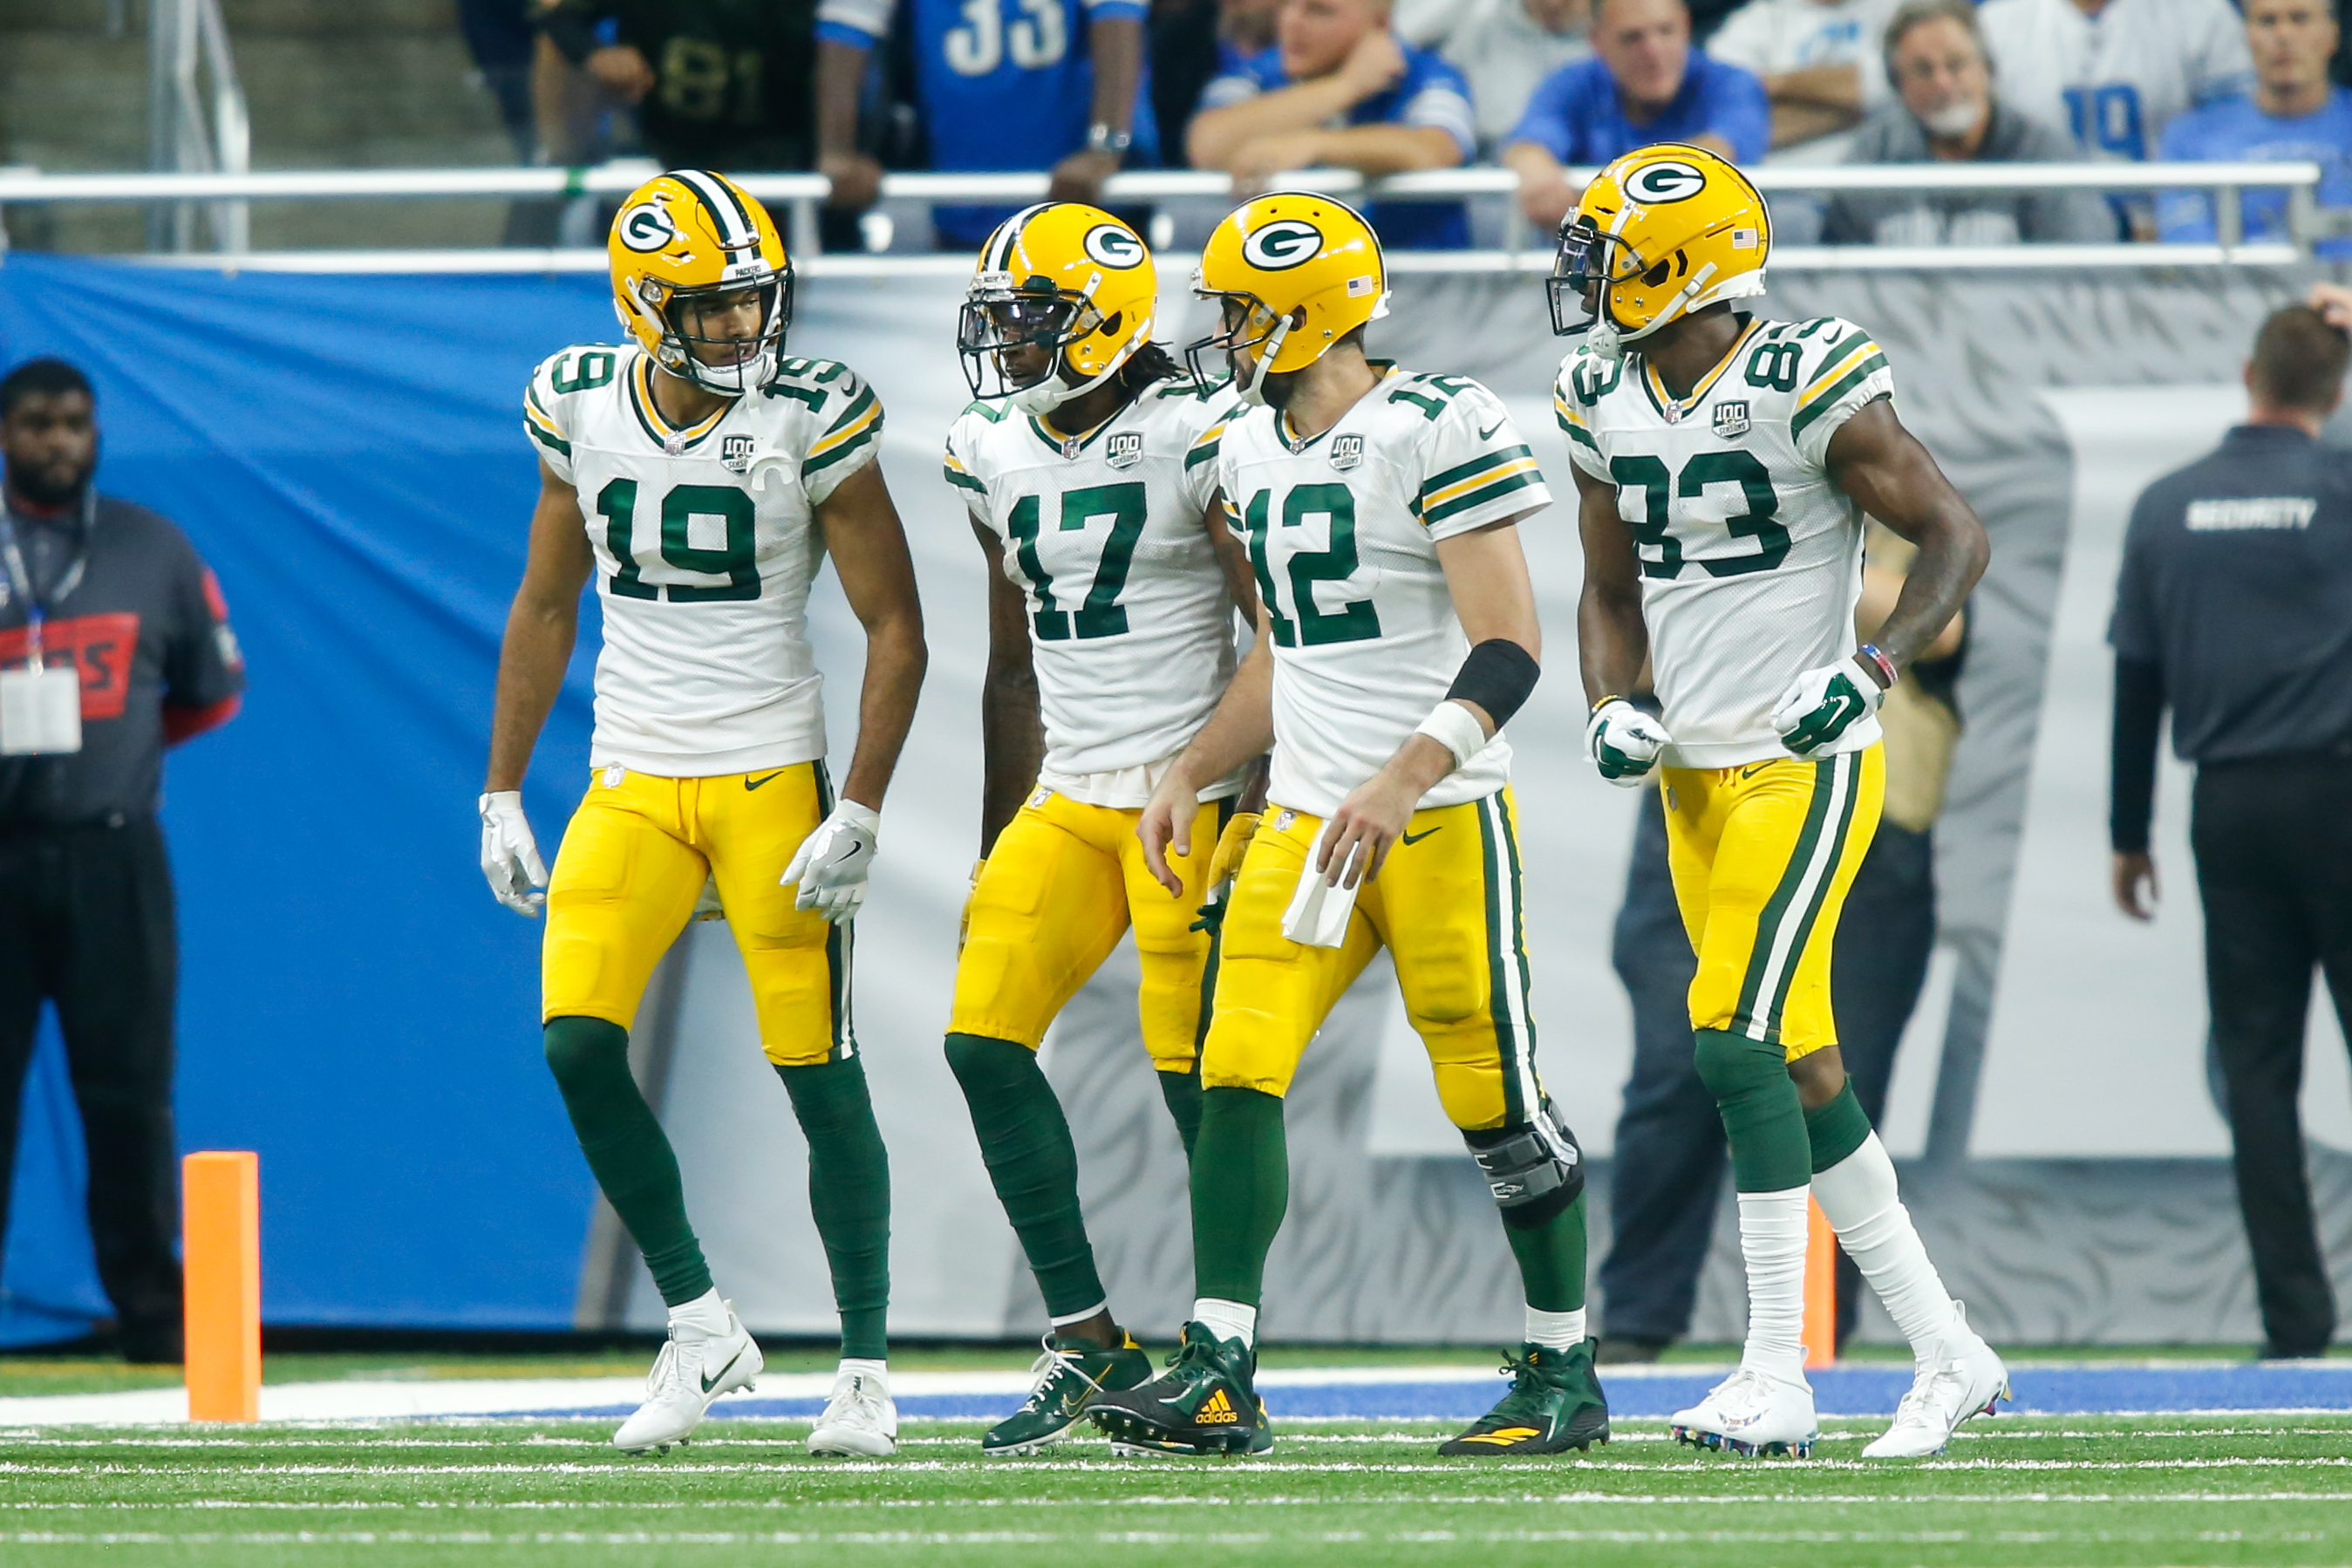 Green Bay Packers quarterback Aaron Rodgers walks to the sideline after a touchdown with Green Bay Packers wide receiver Equanimeous St. Brown, Green Bay Packers wide receiver Davante Adams, and Green Bay Packers wide receiver Marquez Valdes-Scantling during a regular season game between the Green Bay Packers and the Detroit Lions on October 7, 2018 at Ford Field in Detroit, Michigan.